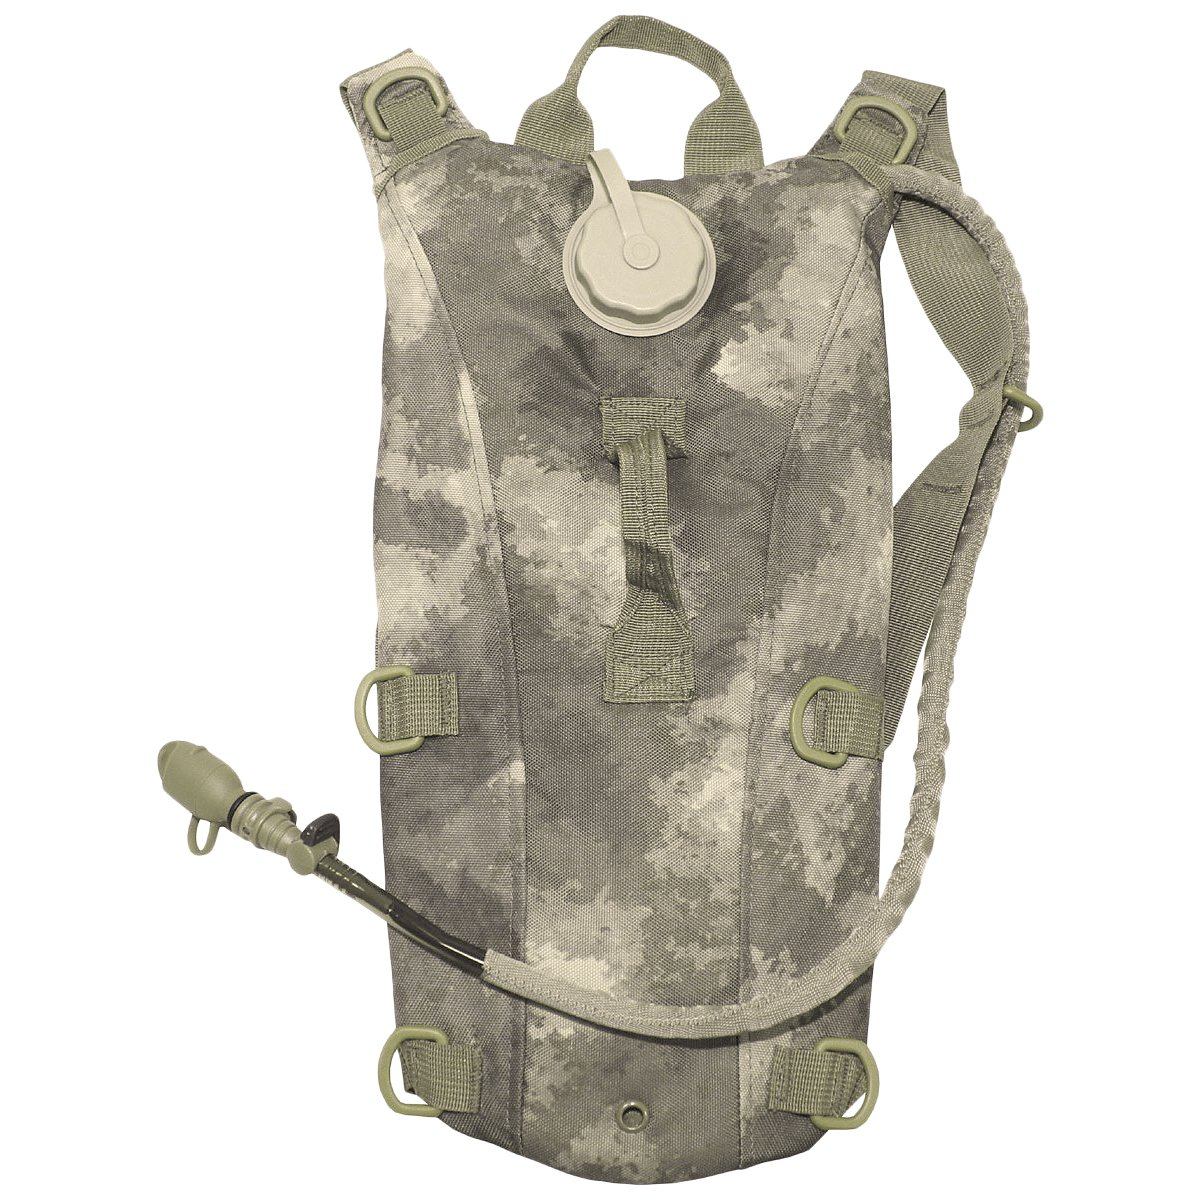 MFH Hydration Backpack TPU Extreme HDT Camo AU by MFH Max Fuchs